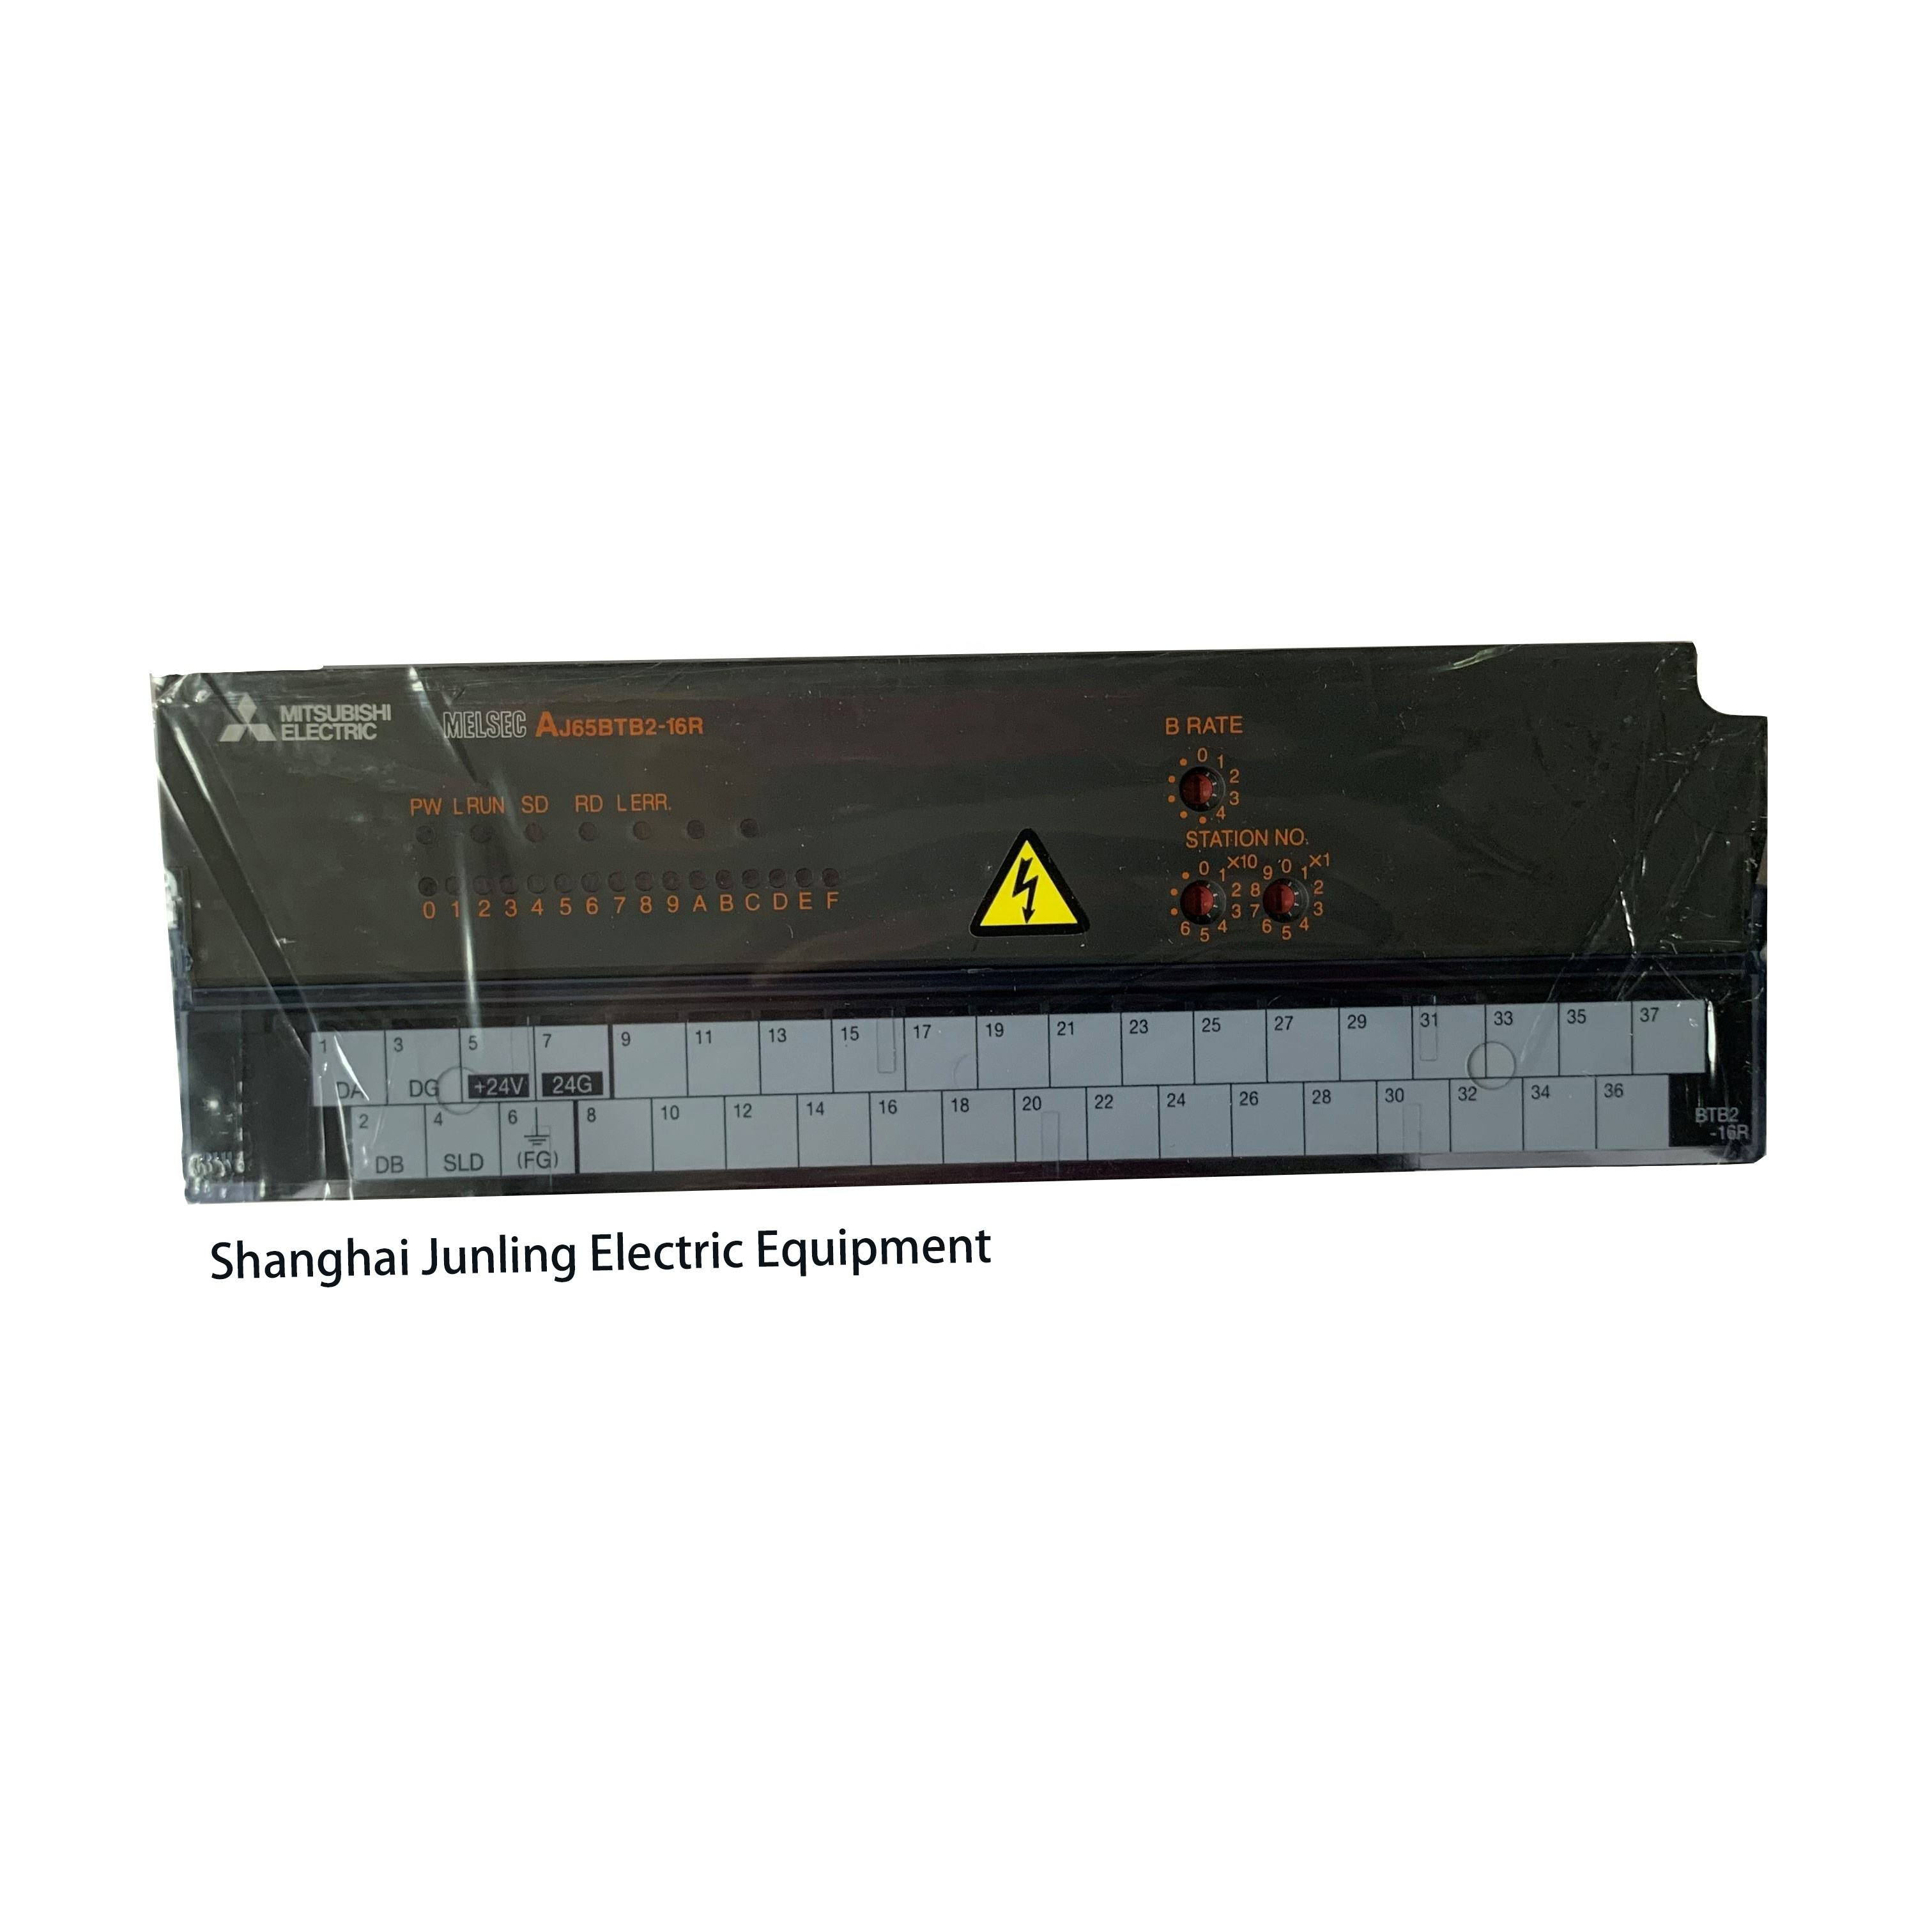 AJ65BTB2-16R Mitsubishi PLCcc-link remote I/O output module, 2-wire, 16-point contact output, DC24V, response time 12ms